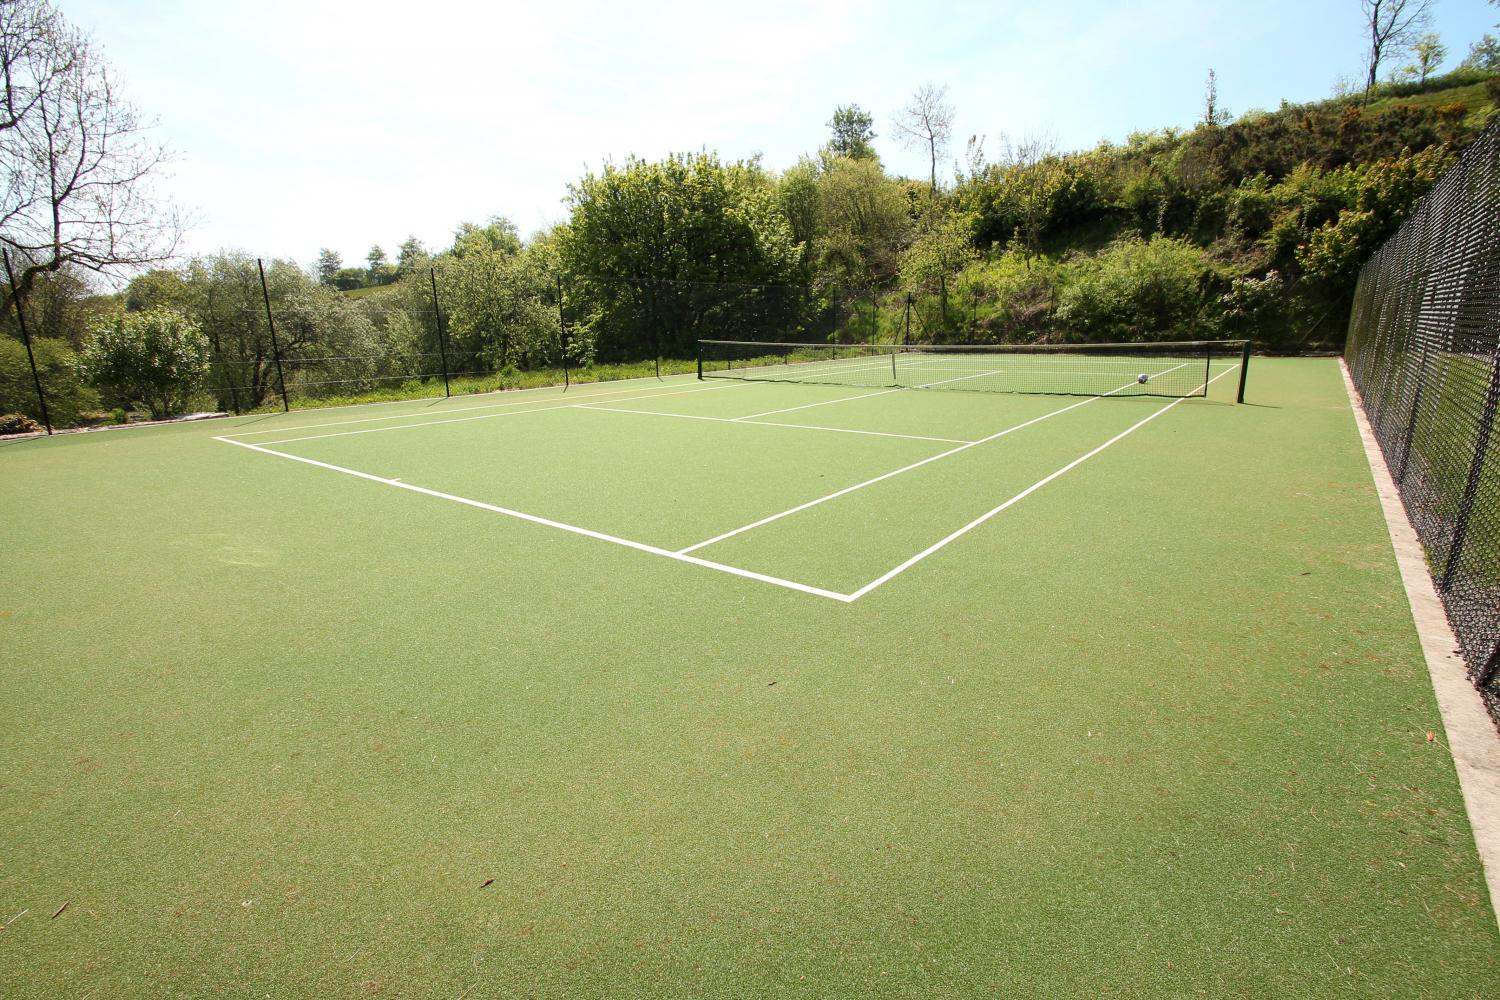 Middle Stolford tennis court for use by our guests